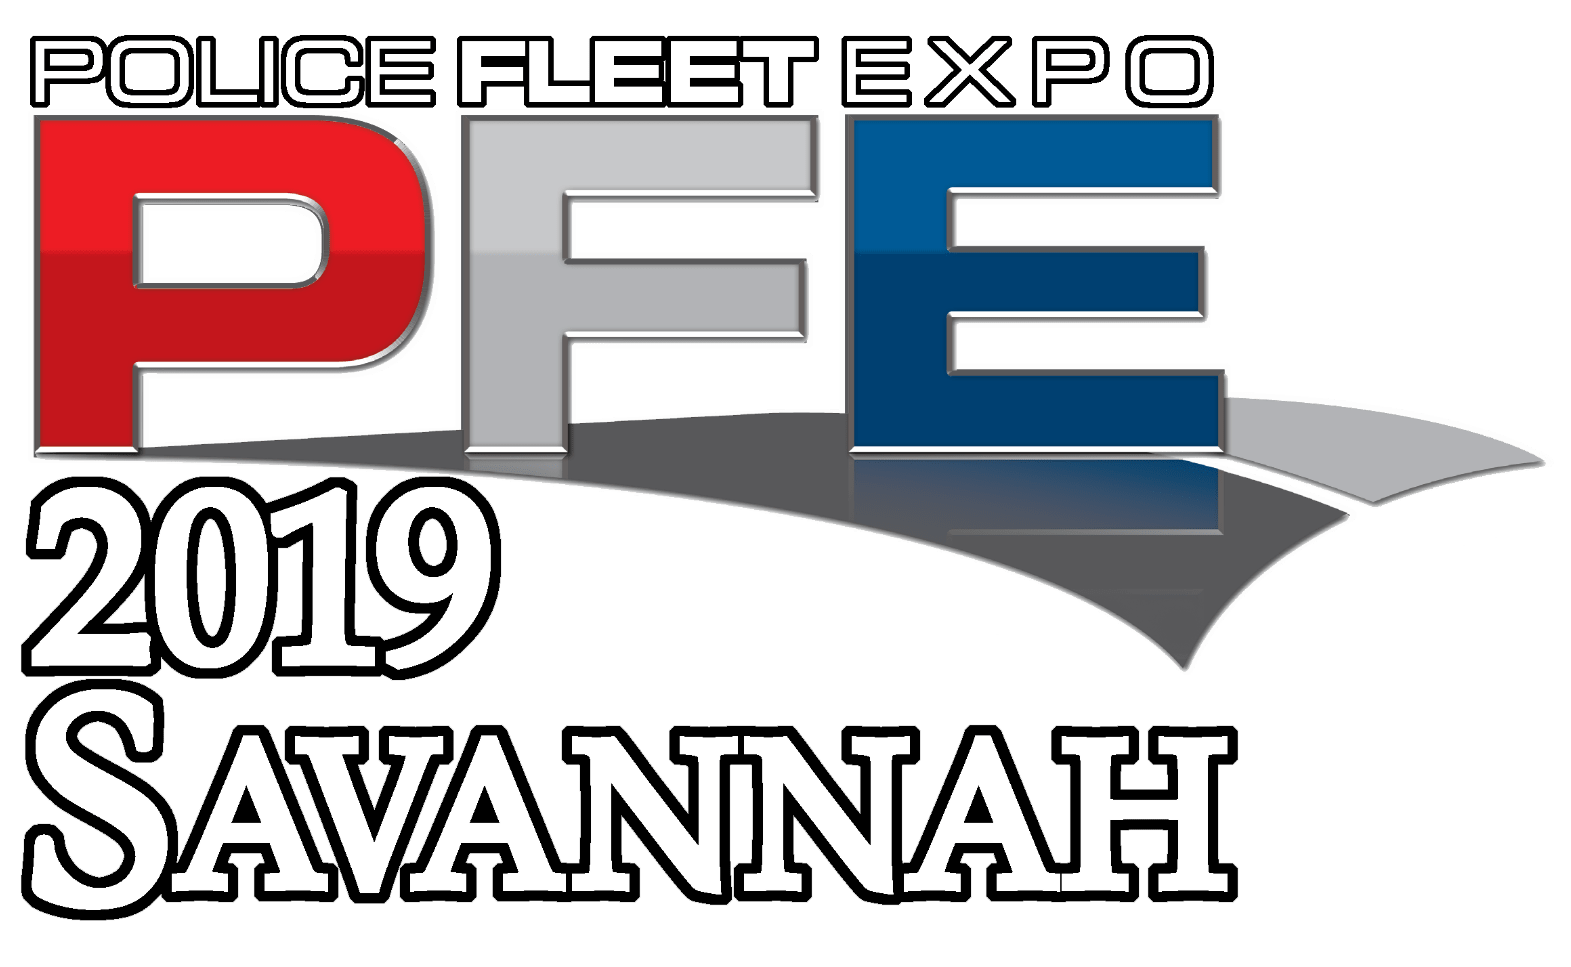 Police Fleet Expo Savannah 2019